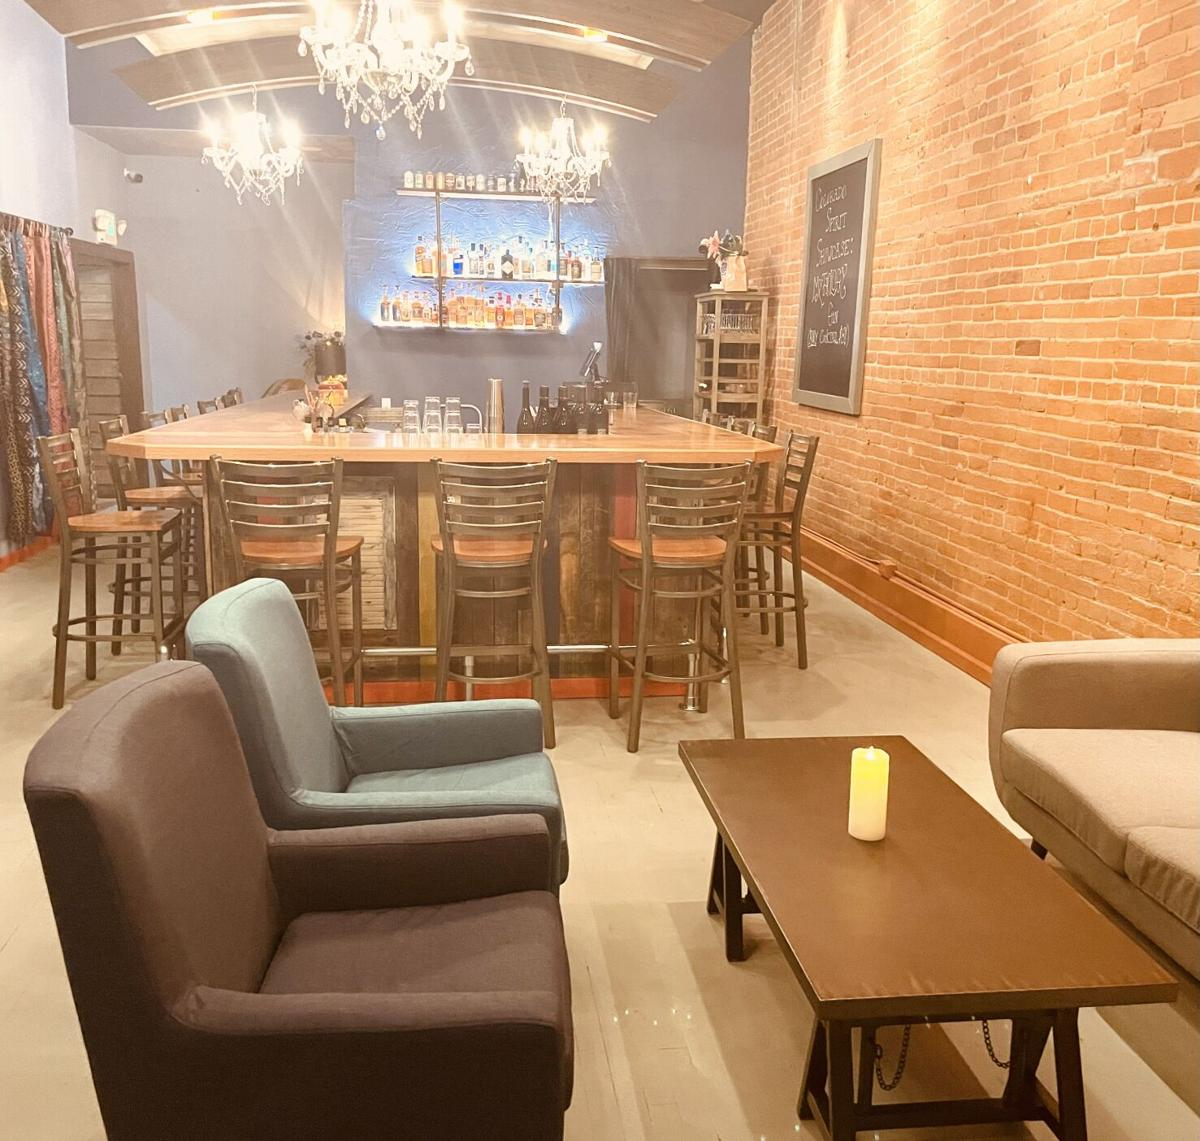 Colorado Springs chef opens lounge in his Italian eatery